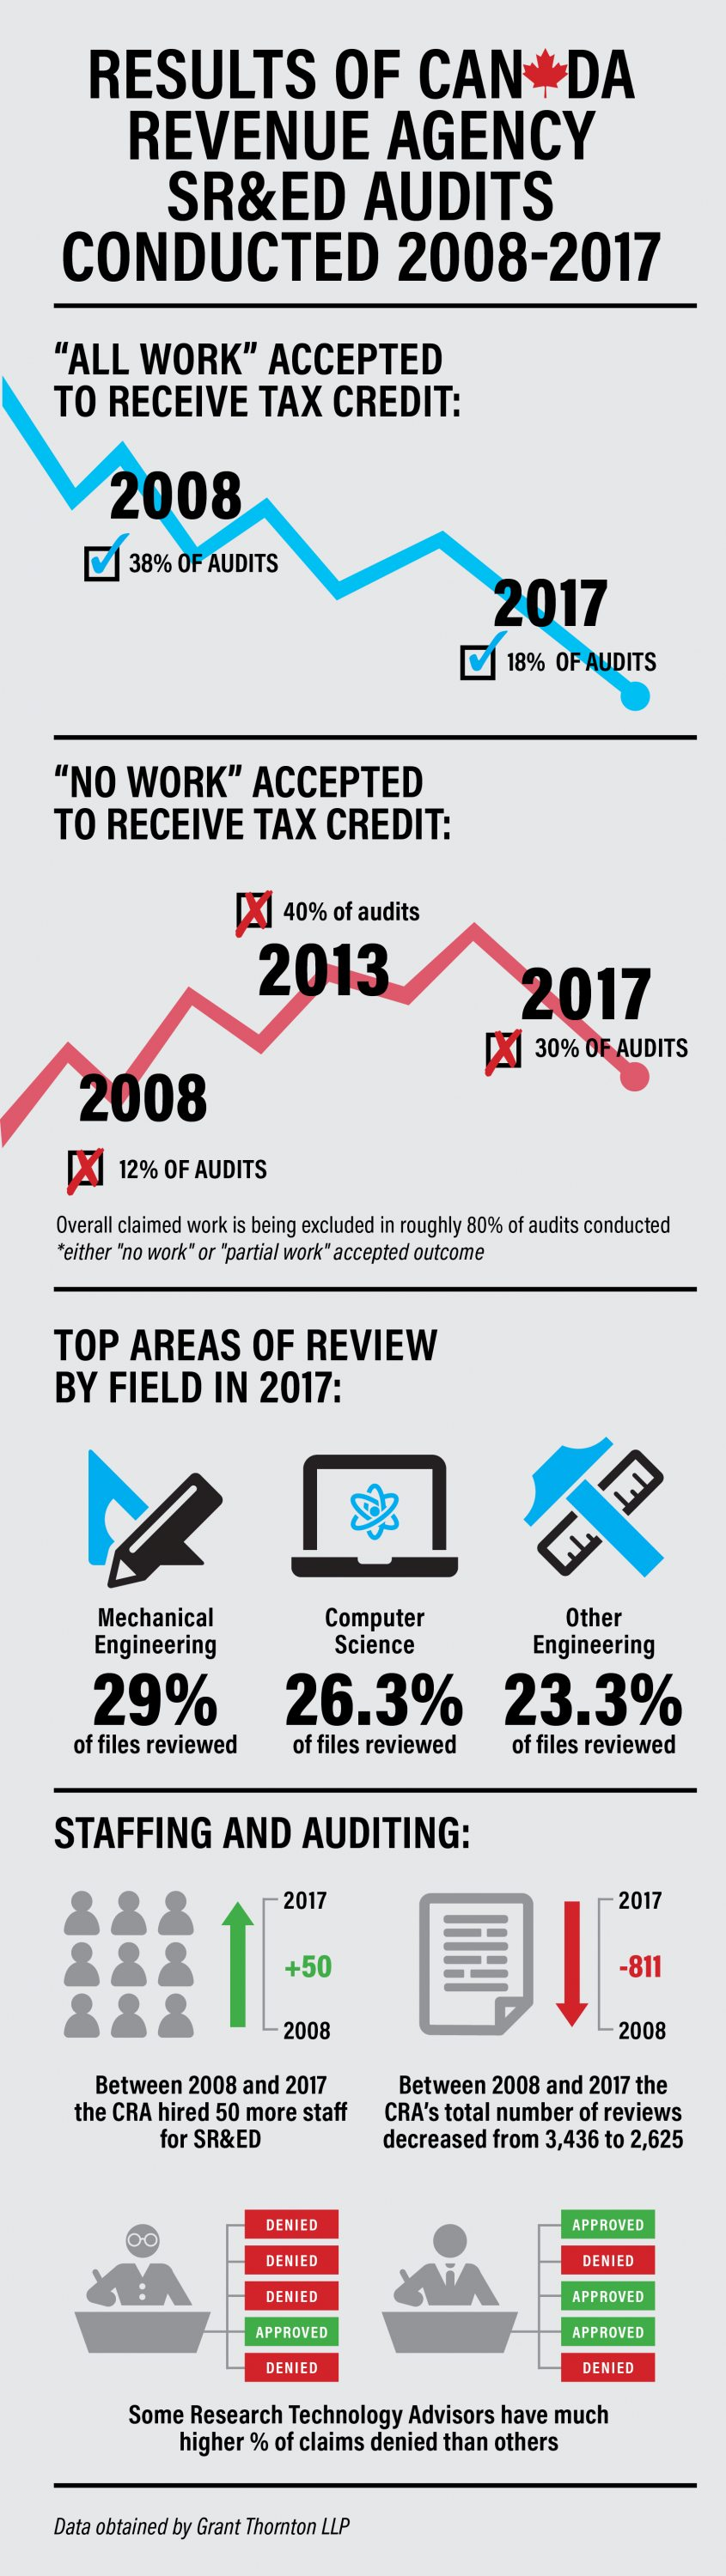 SR&ED infographic 2008 to 2017 by Mel Manasan data from Grant Thornton